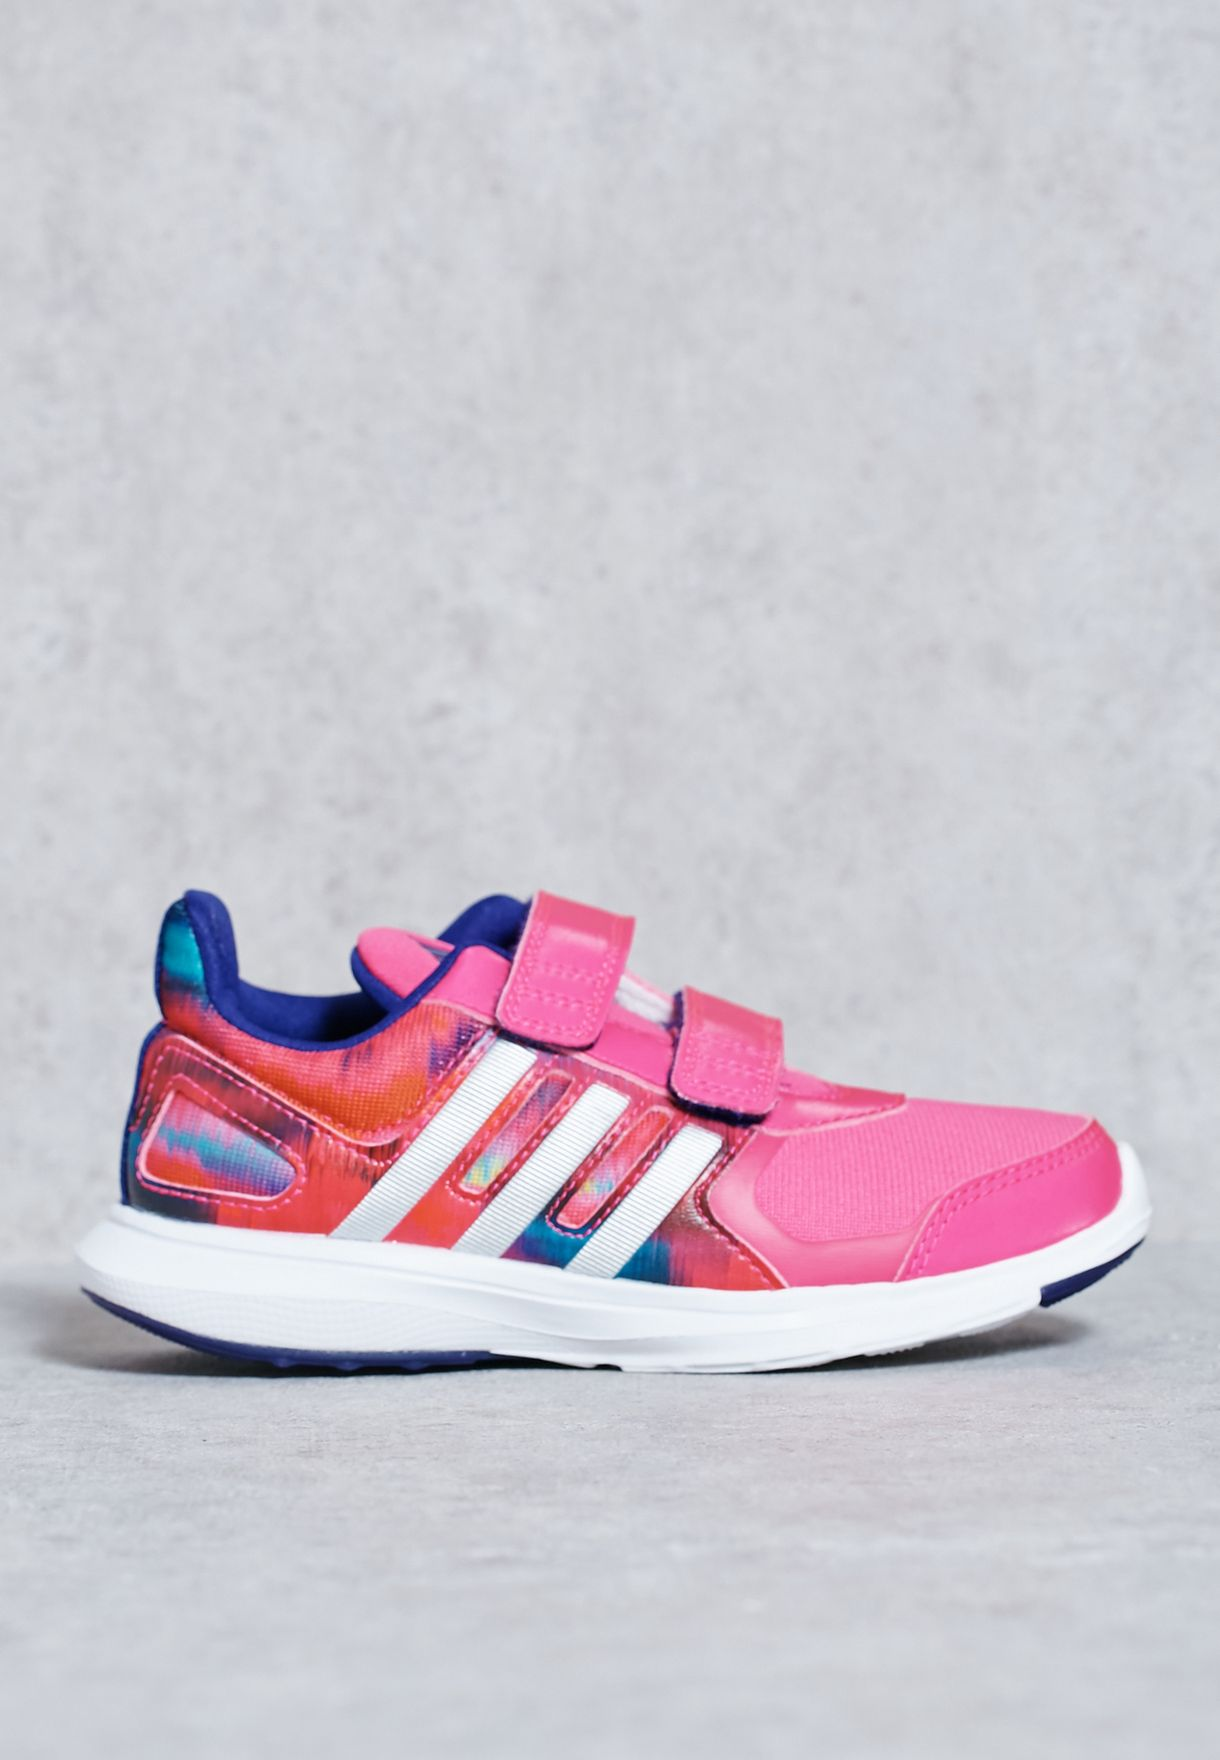 Hyperfast 2 Adidas Kids For Oman Pink Shop Aq3872 In 0 nwxRtW